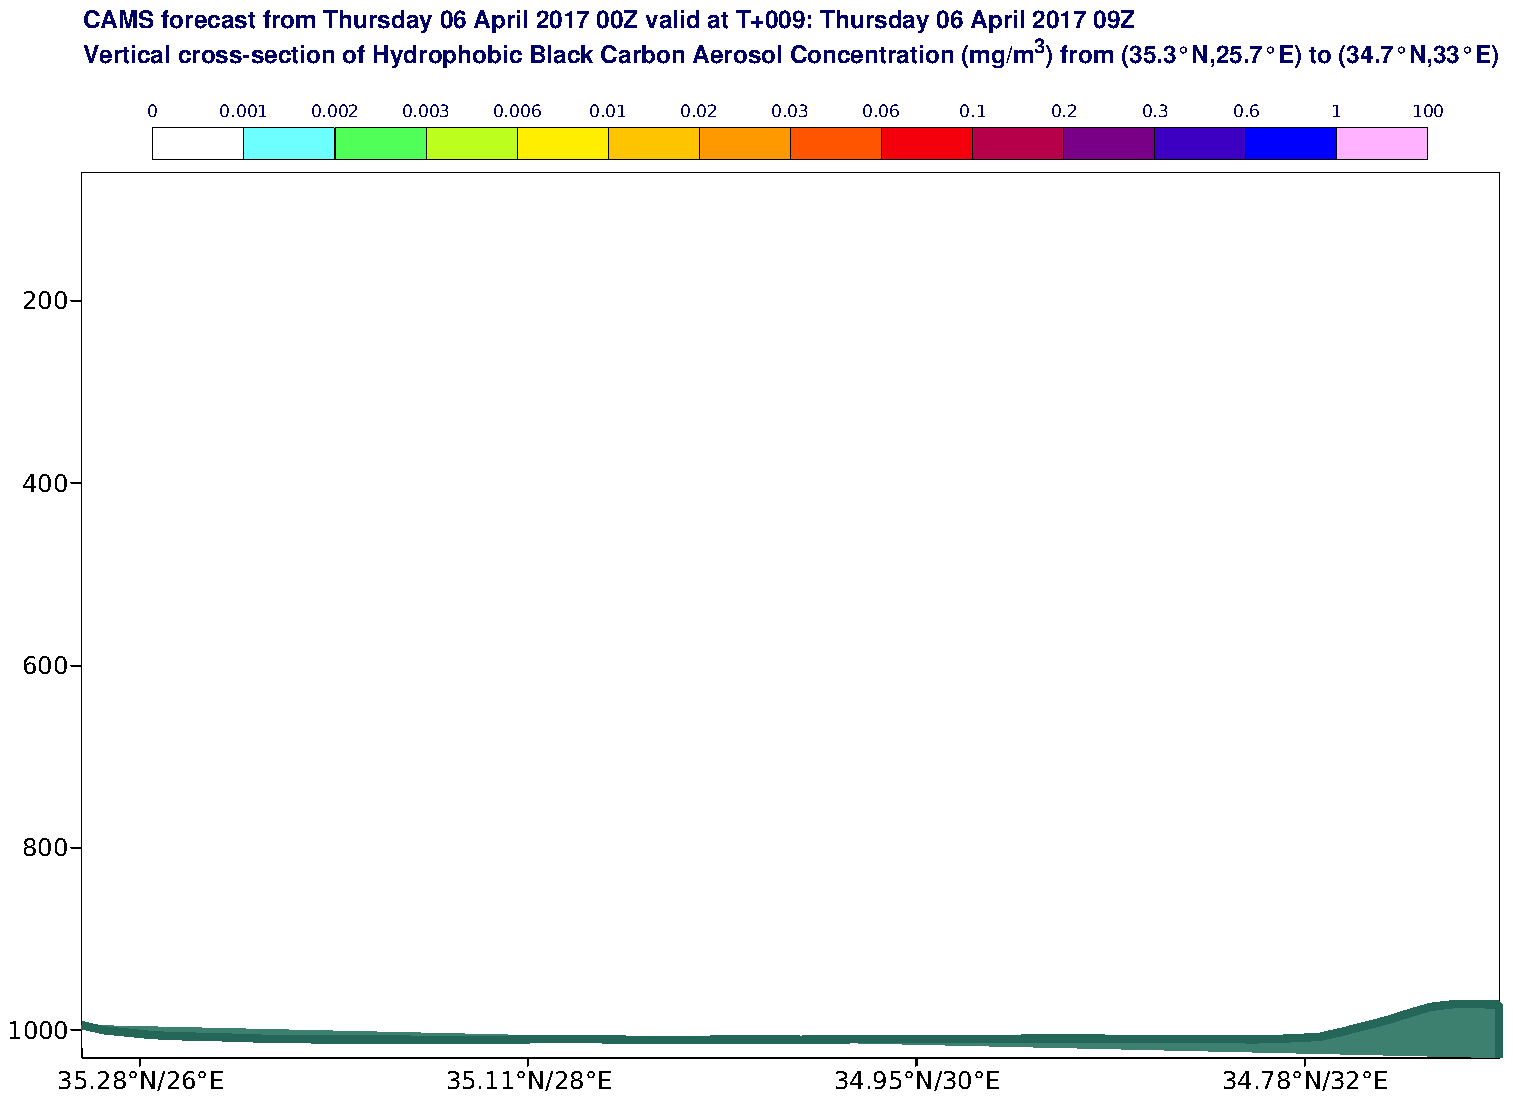 Vertical cross-section of Hydrophobic Black Carbon Aerosol Concentration (mg/m3) valid at T9 - 2017-04-06 09:00